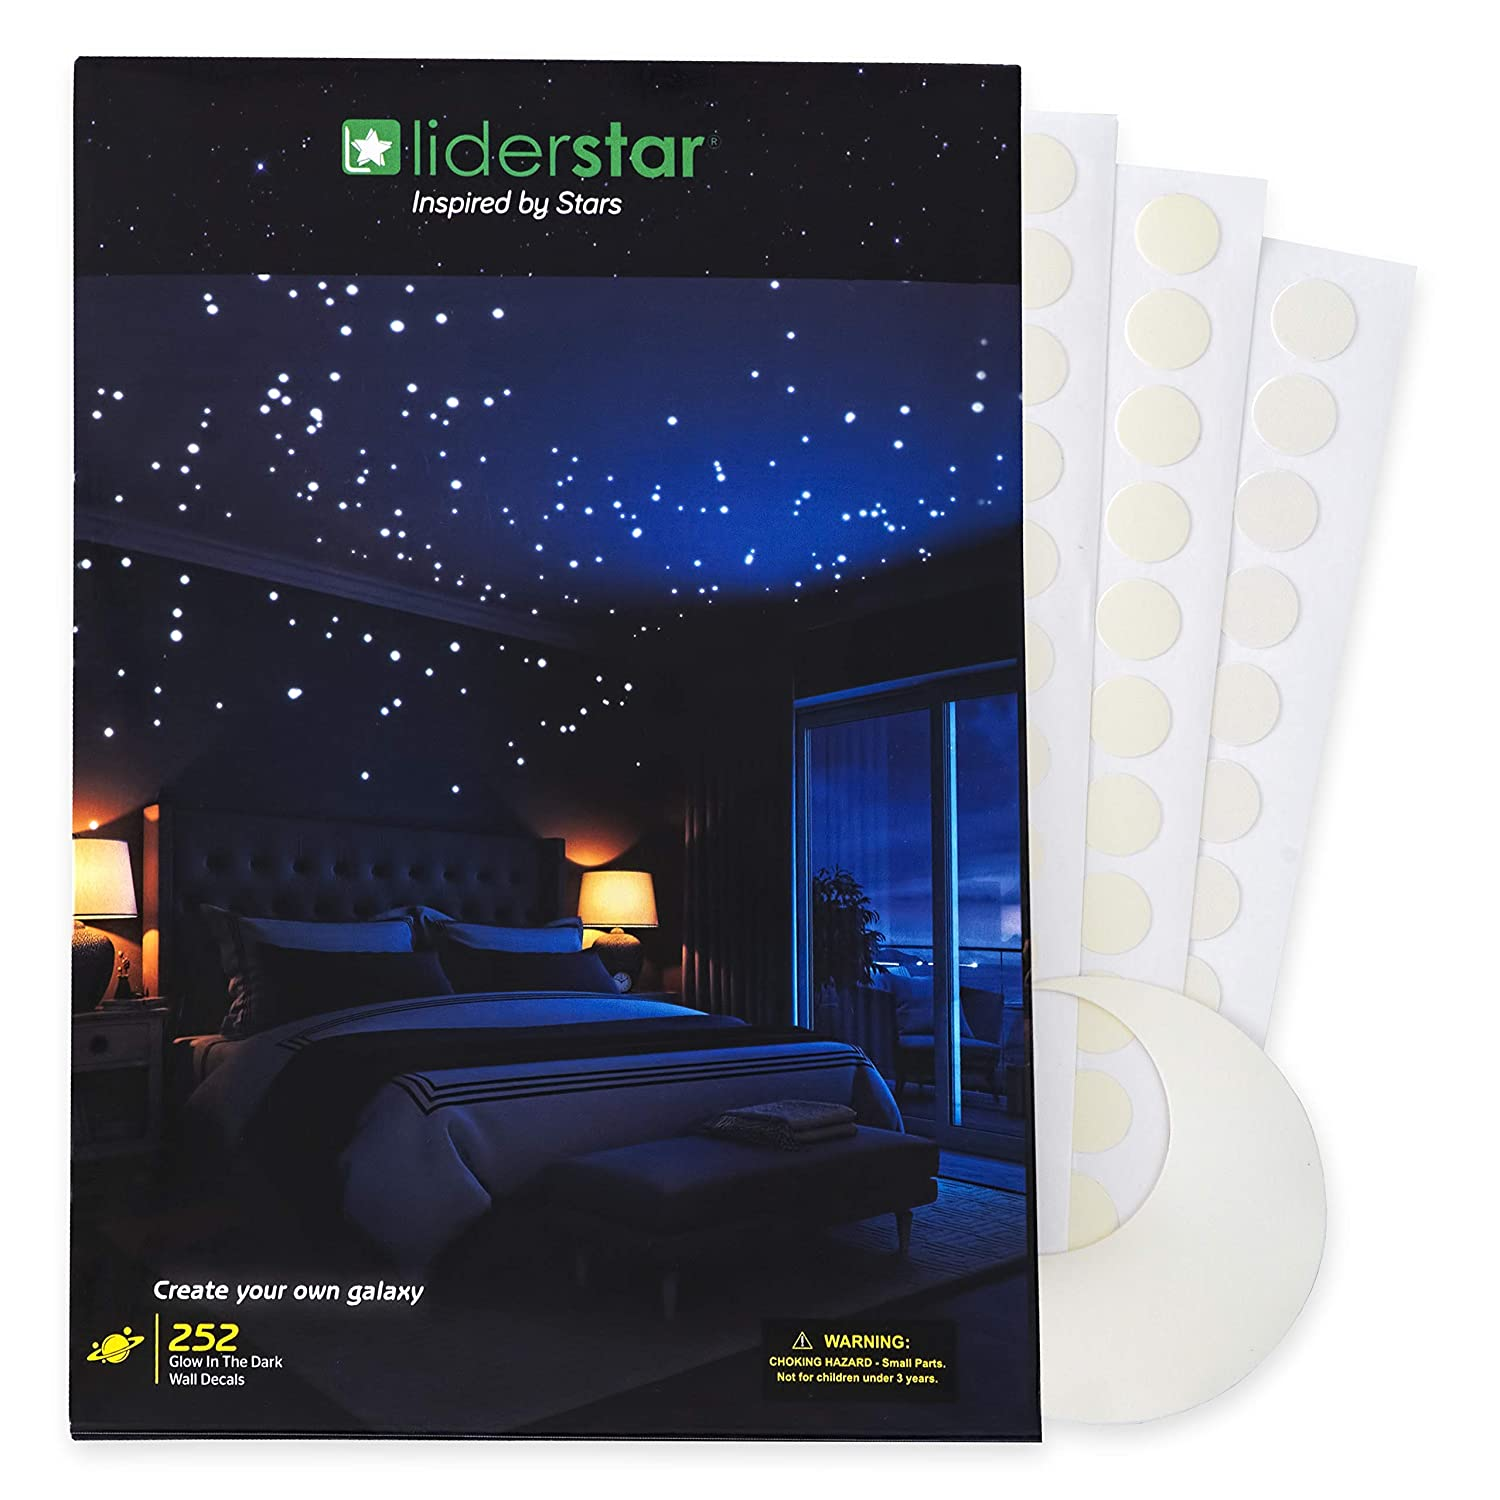 Glow In The Dark Stars Wall Stickers,252 Adhesive Dots and Moon for Starry Sky, Decor For Kids Bedroom or Birthday Gift,Beautiful Wall Decals for any Room by LIDERSTAR,Bright and Realistic.